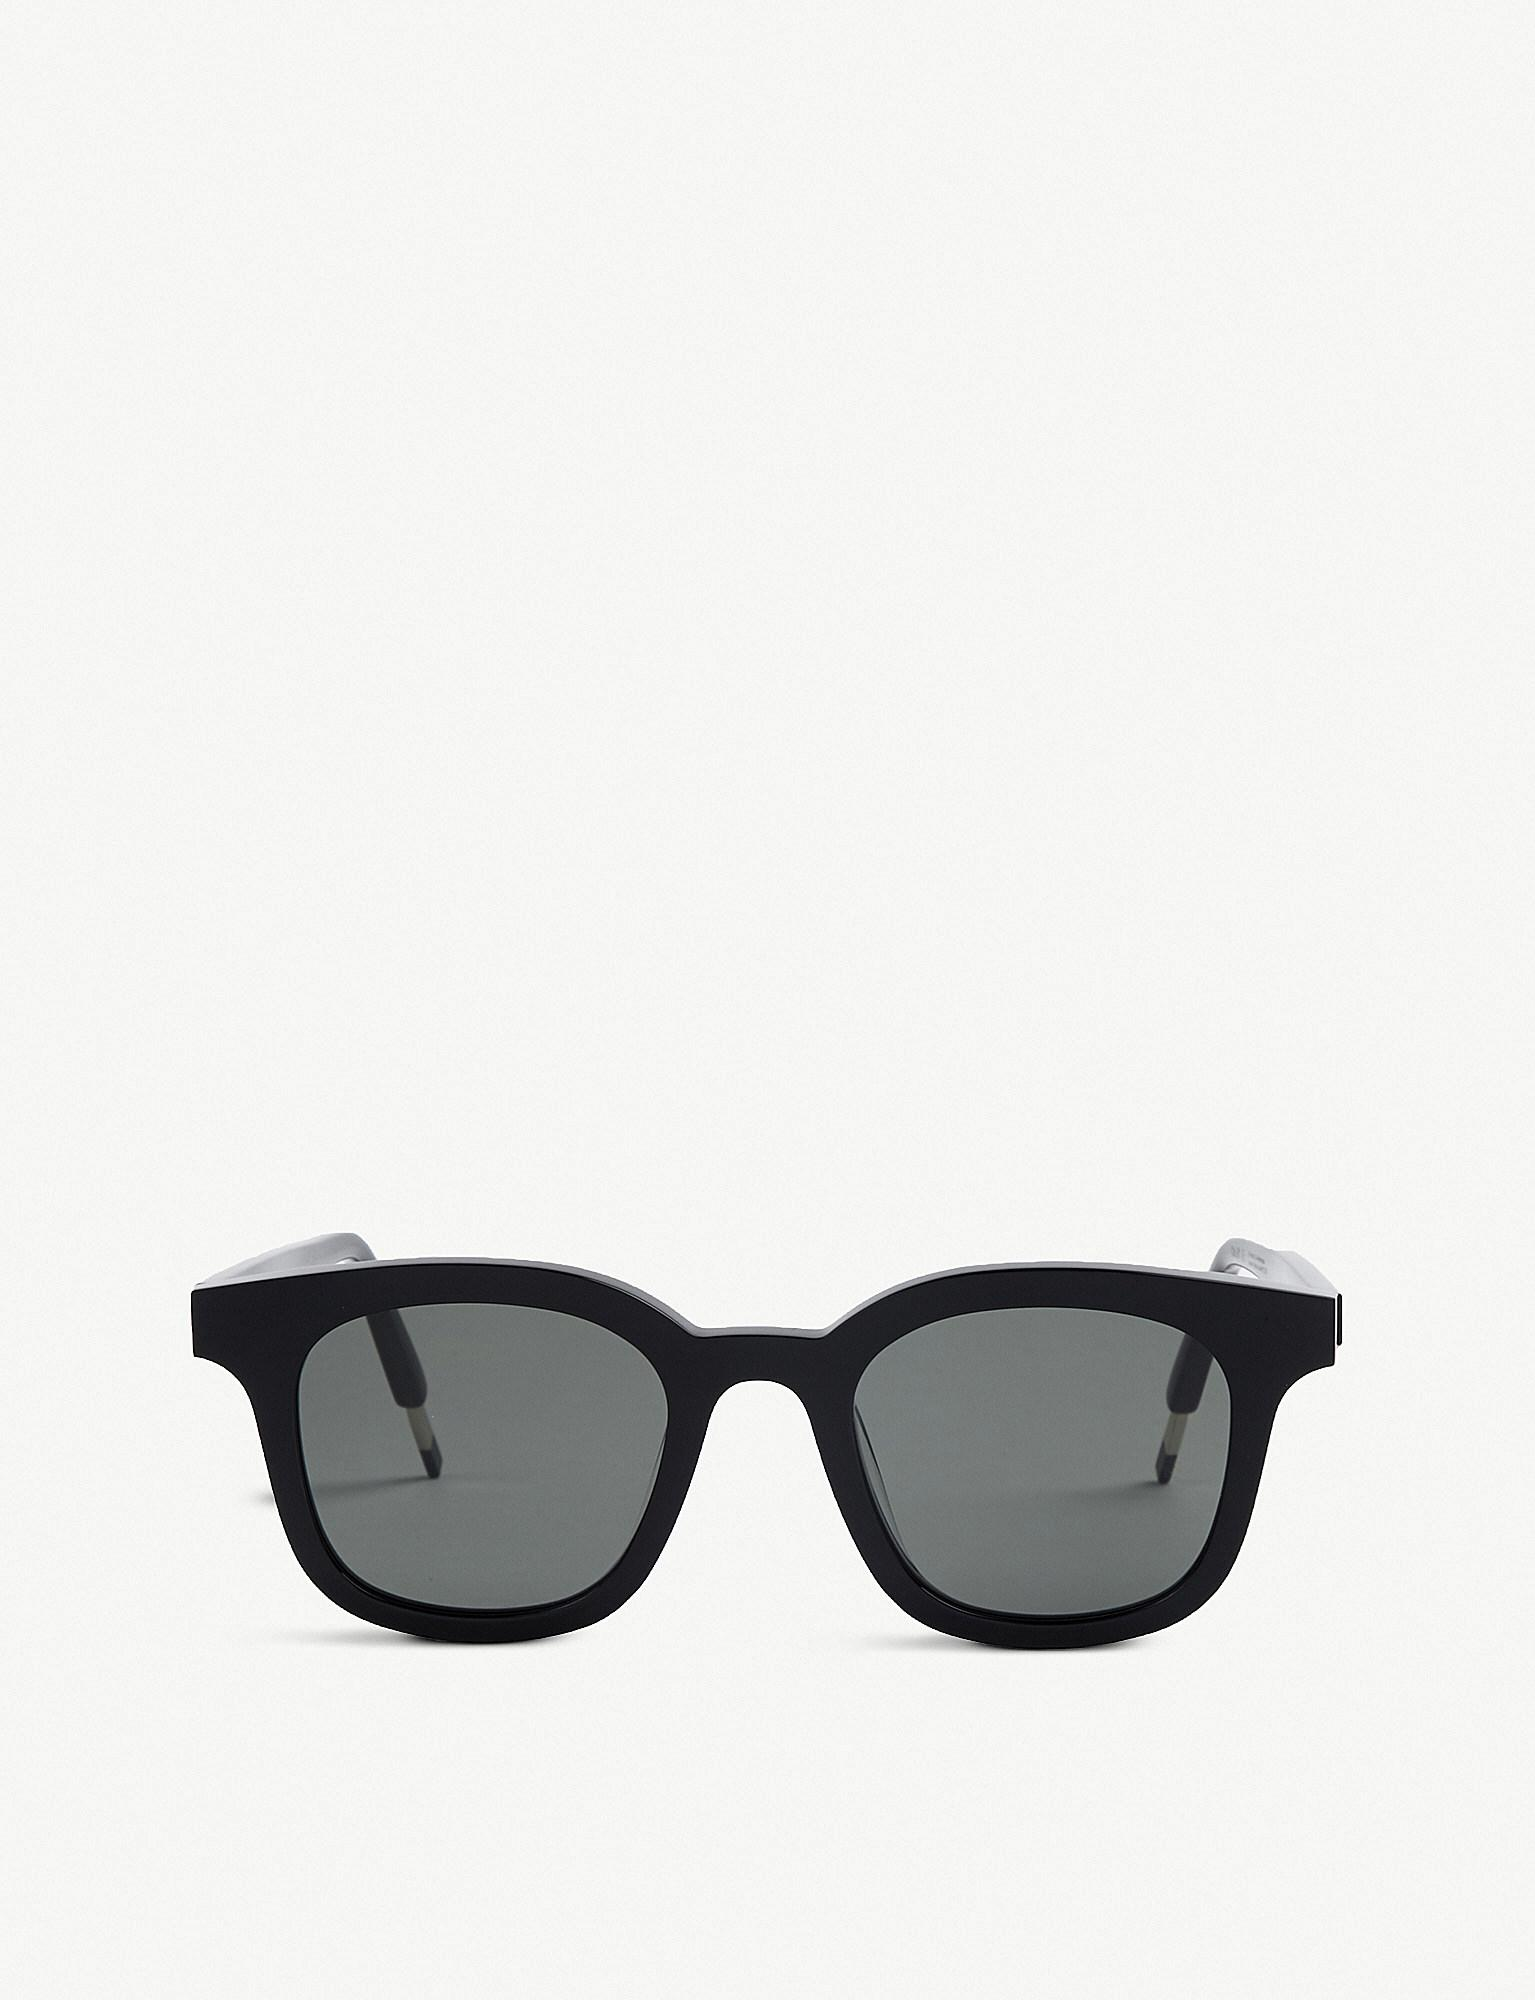 2ab8dc21e730 Gentle Monster Dal Lake Acetate Sunglasses in Black - Lyst